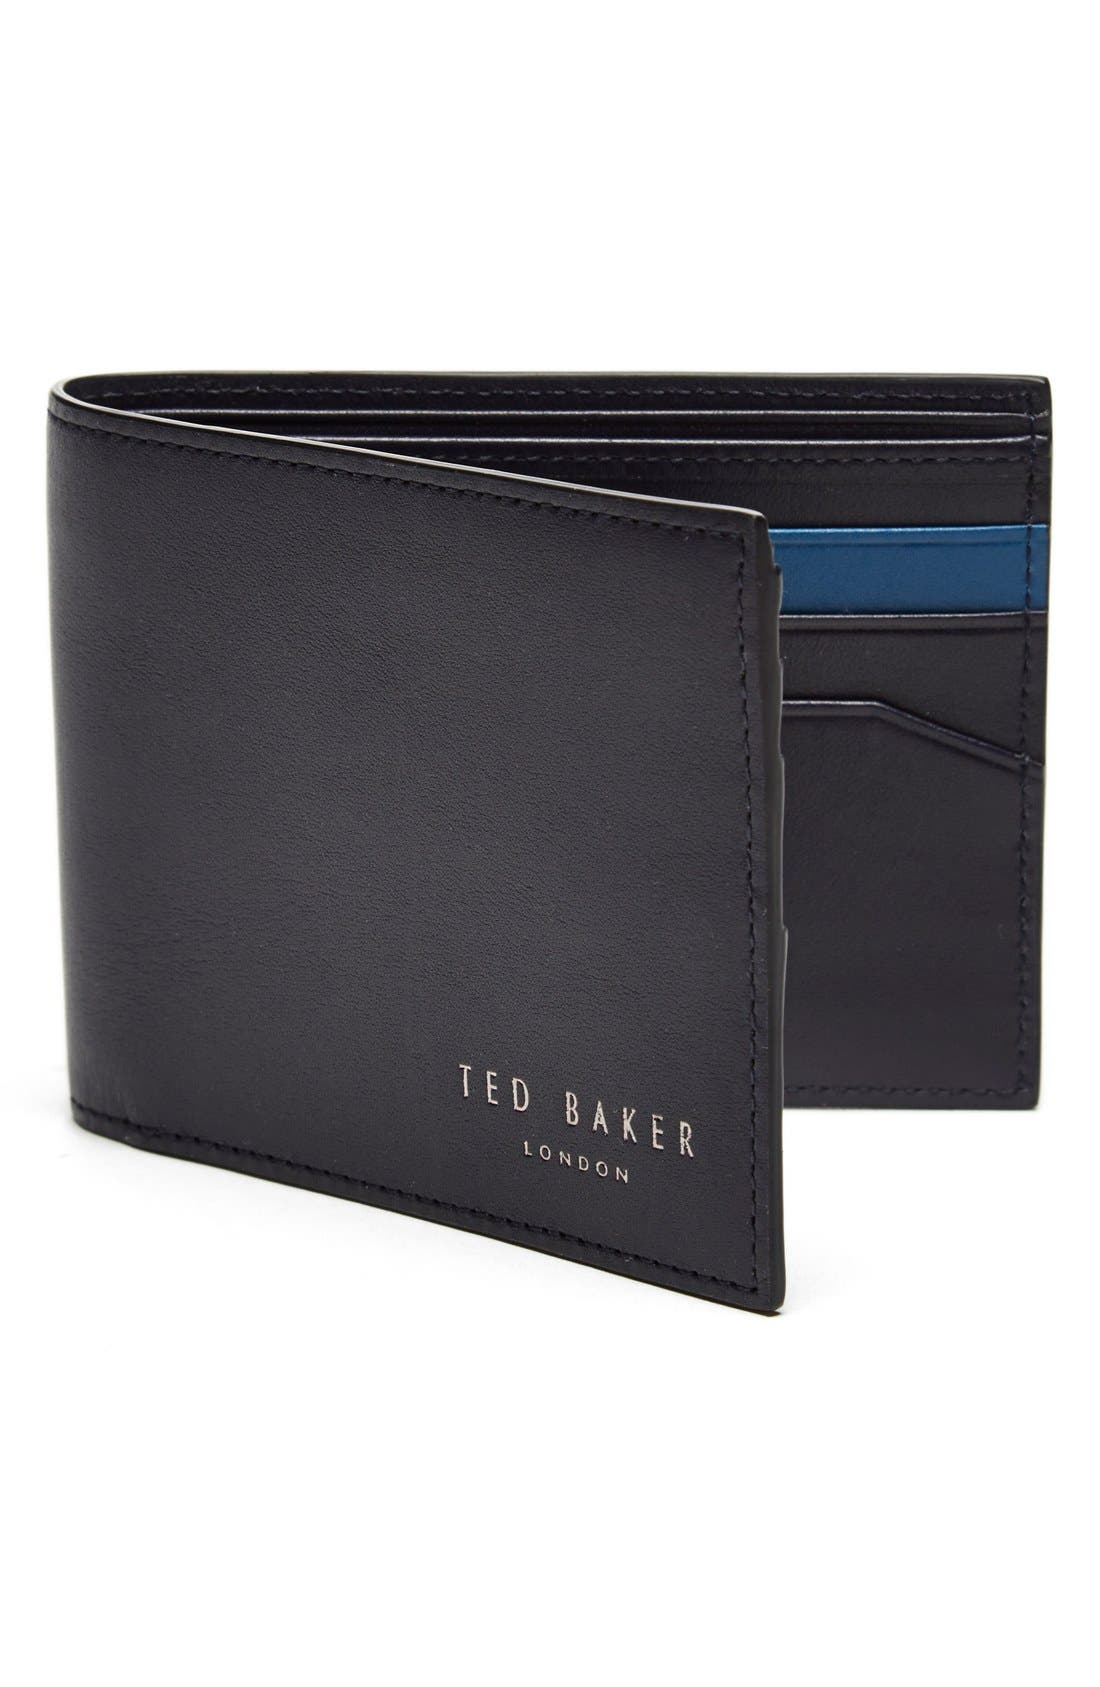 Main Image - Ted Baker London Leather Wallet